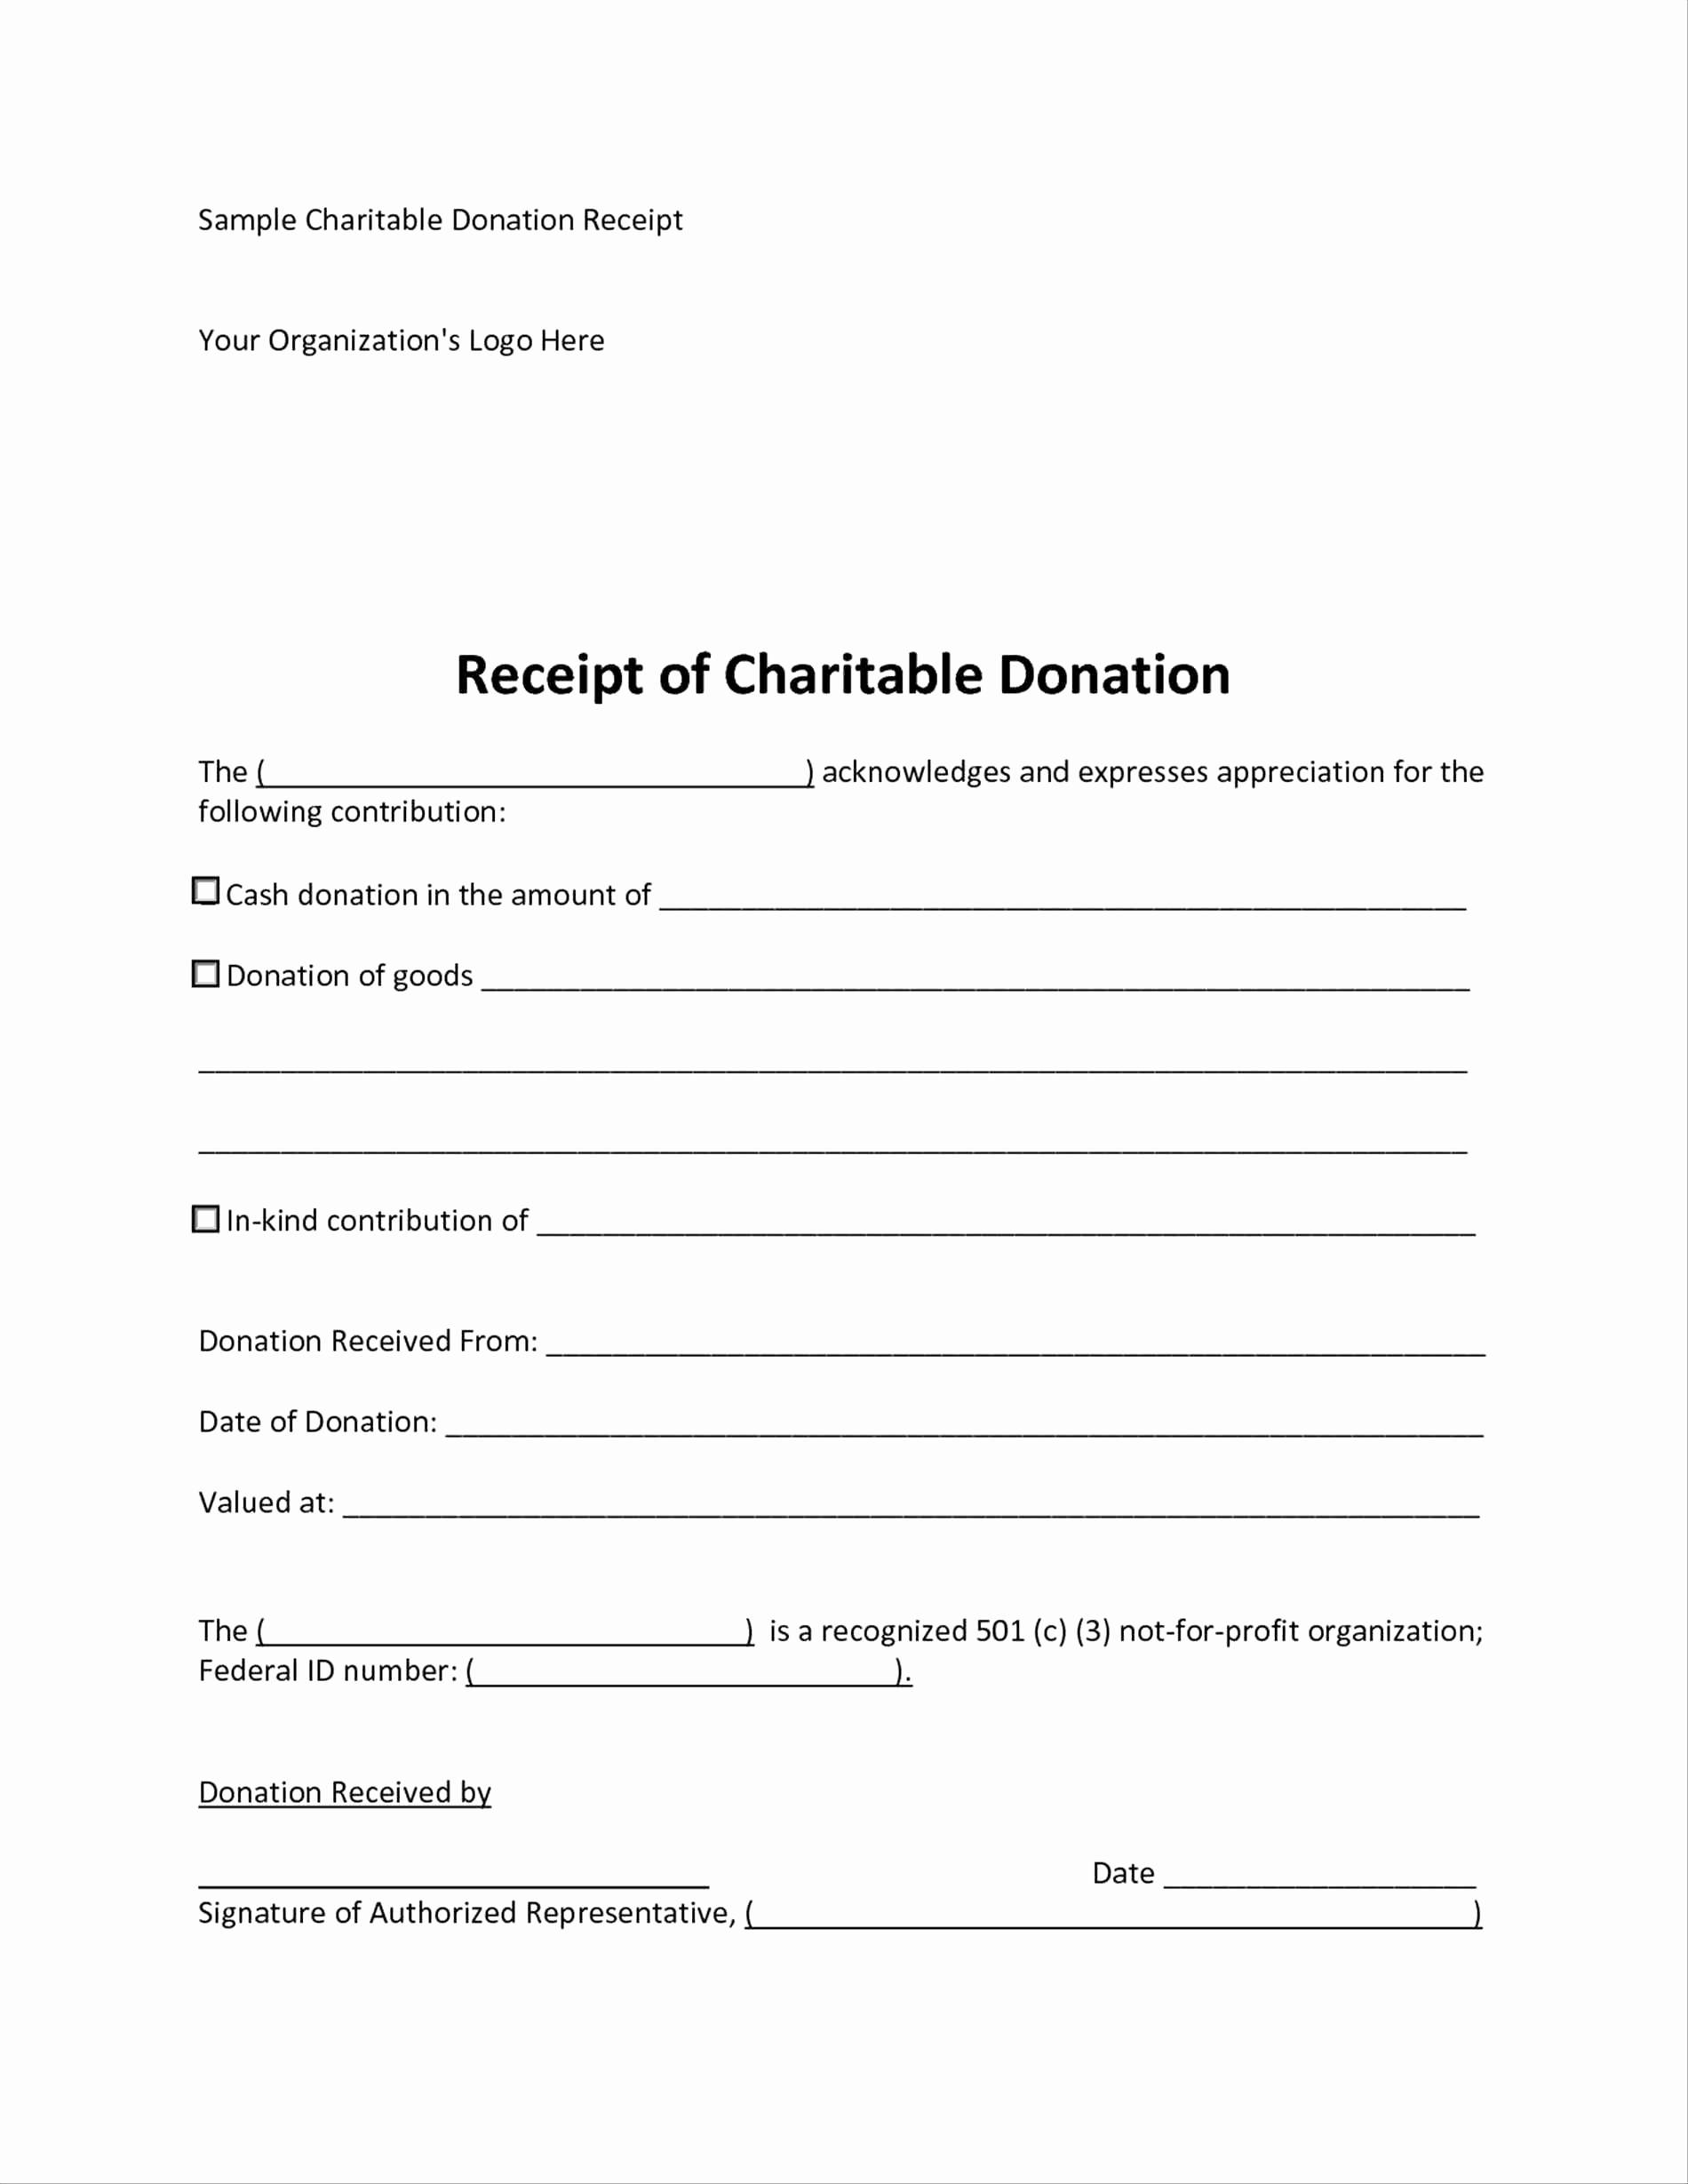 Donation Letter Template for Tax Purposes - Tax Donation Letter Template Awesome Salvation Army Donation